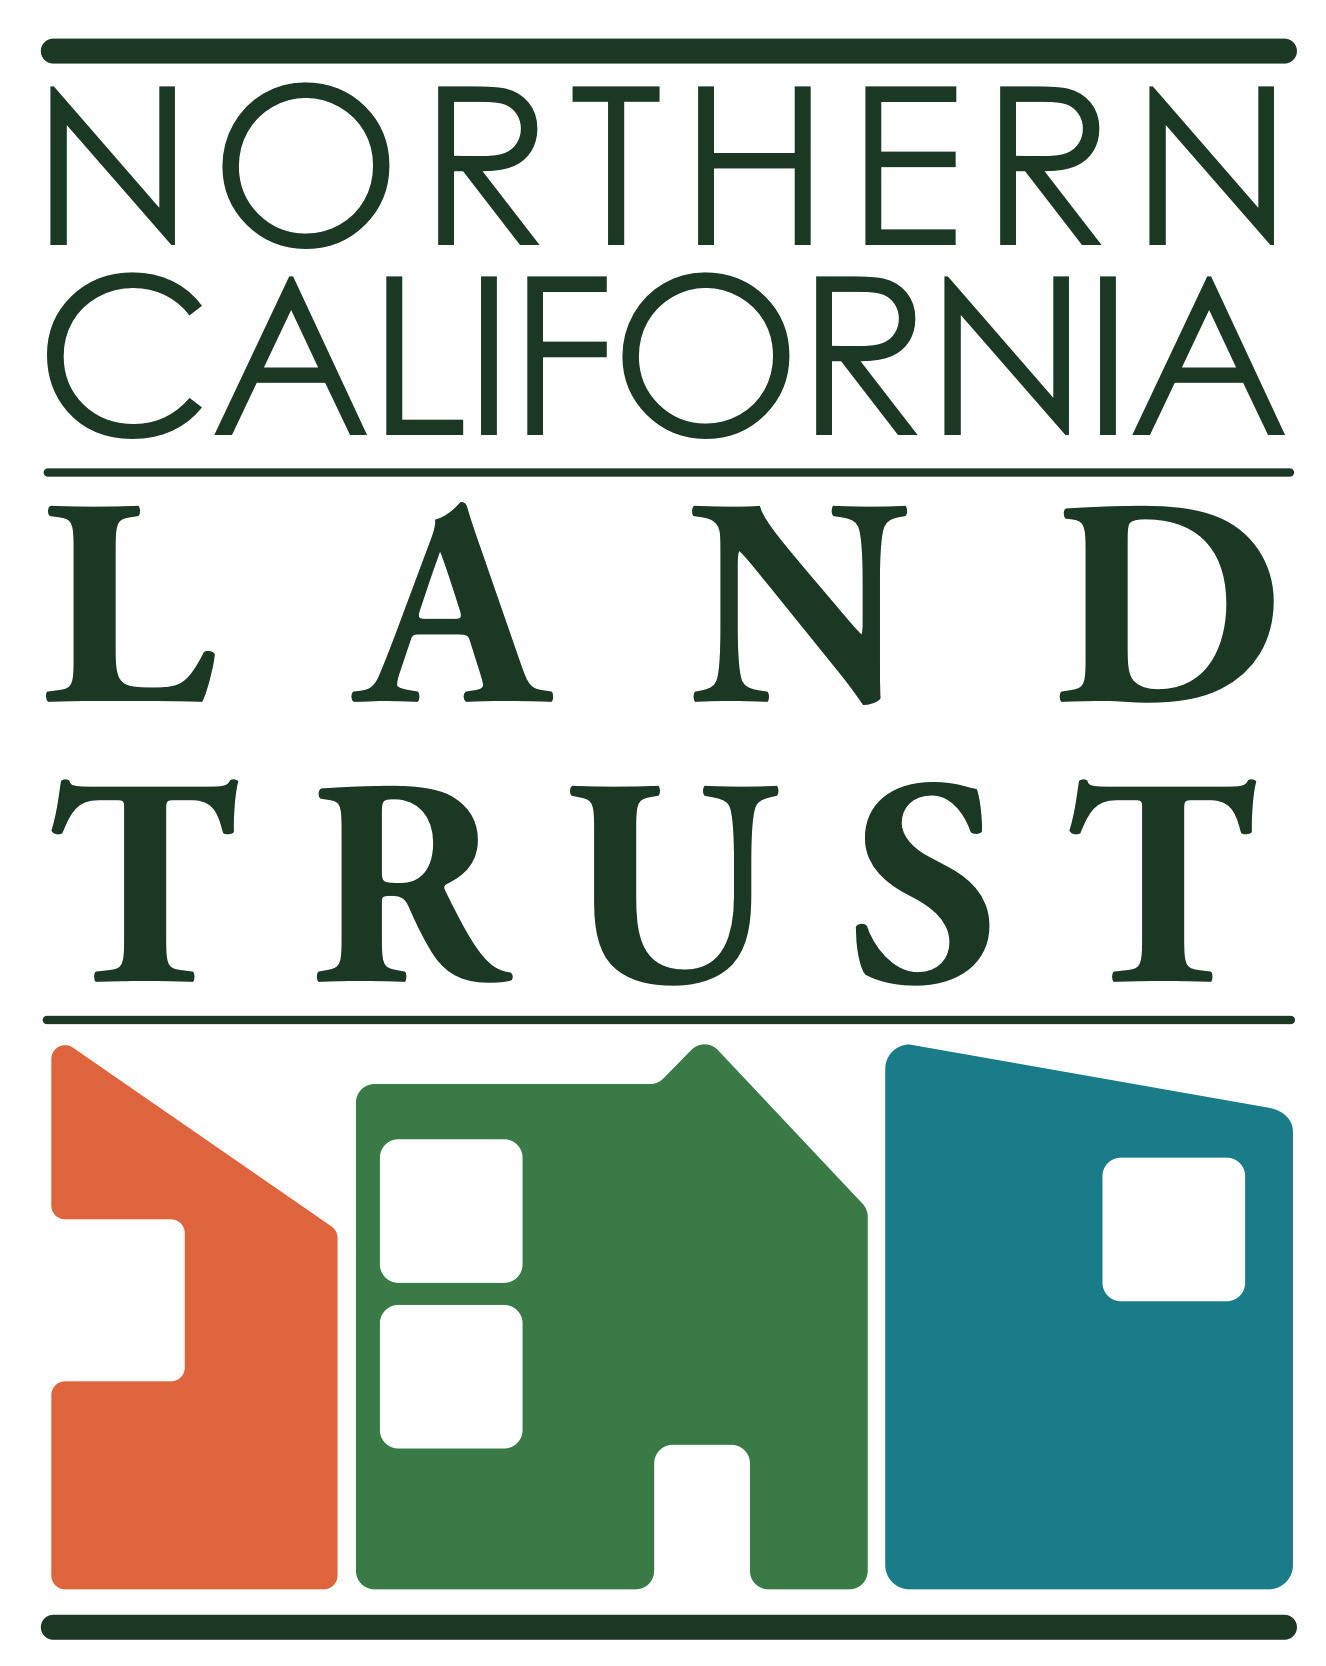 Northern California Land Trust logo